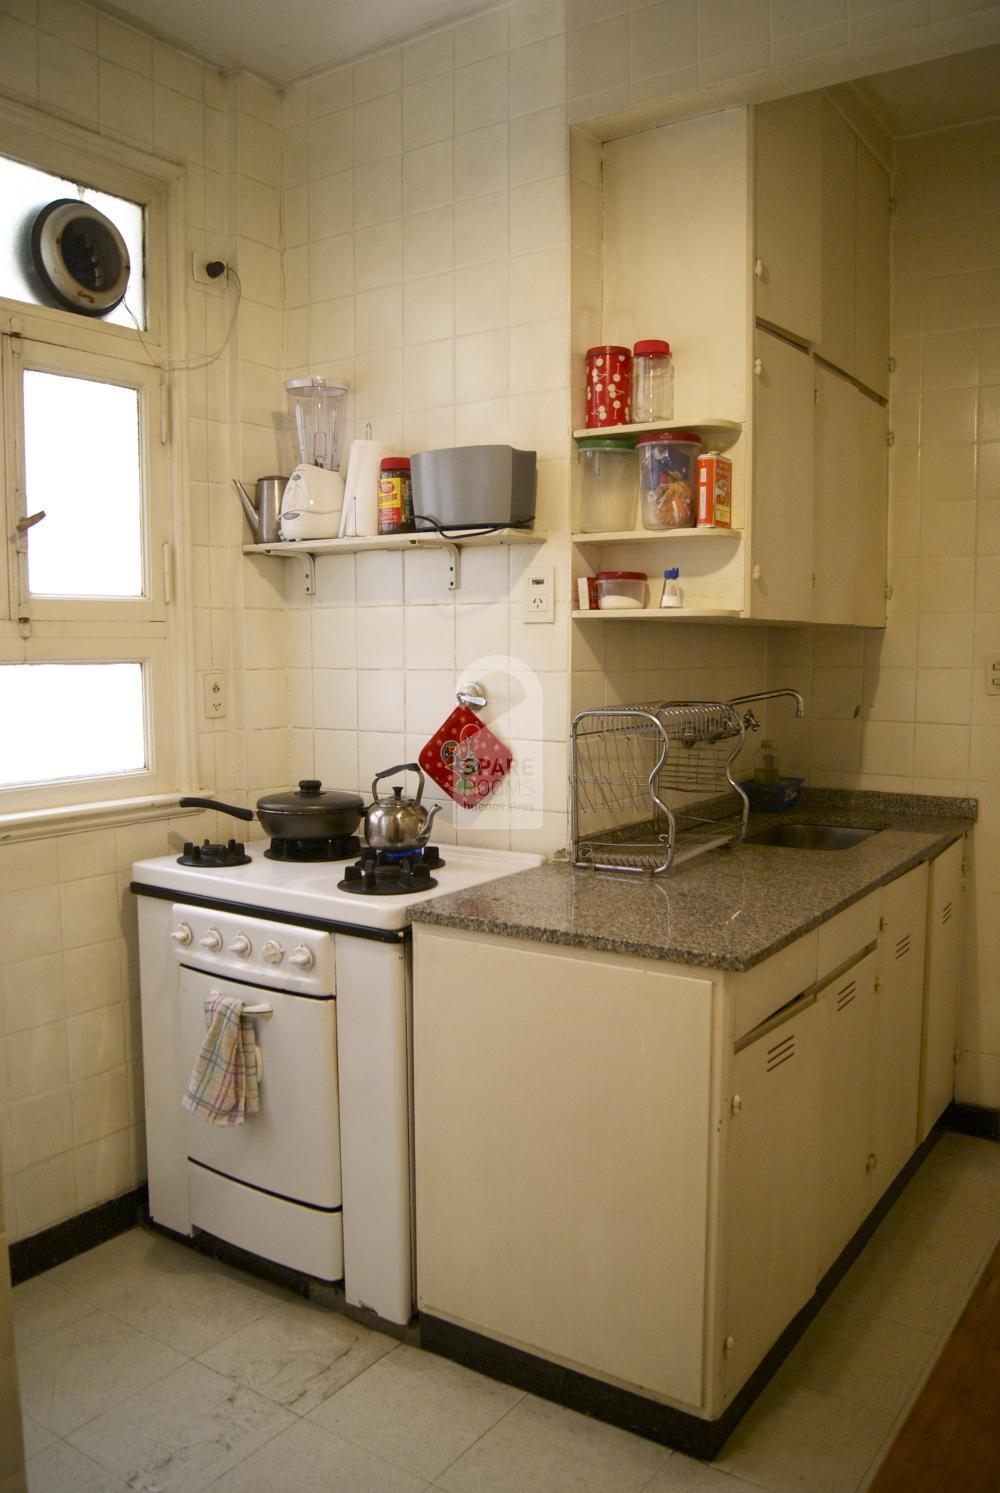 Kitchen at Recoleta apartment